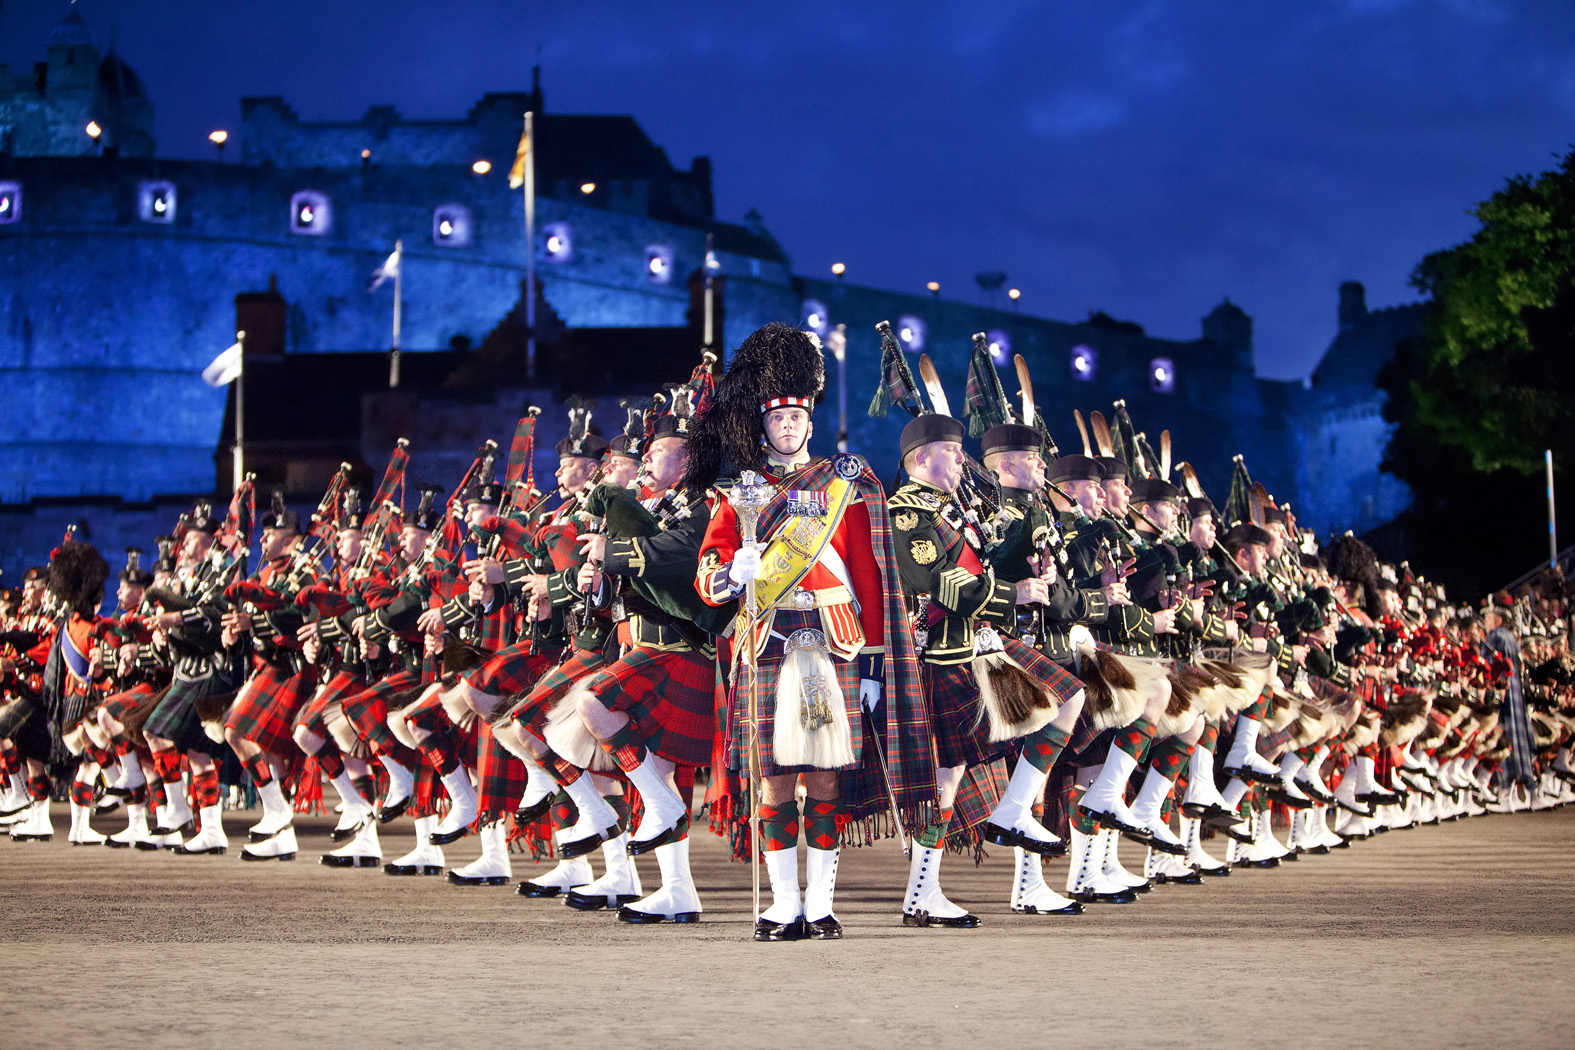 Photograph of Edinburgh Military Tattoo taken by owner of Edinburgh Photography Workshop, Rich Dyson, LRPS